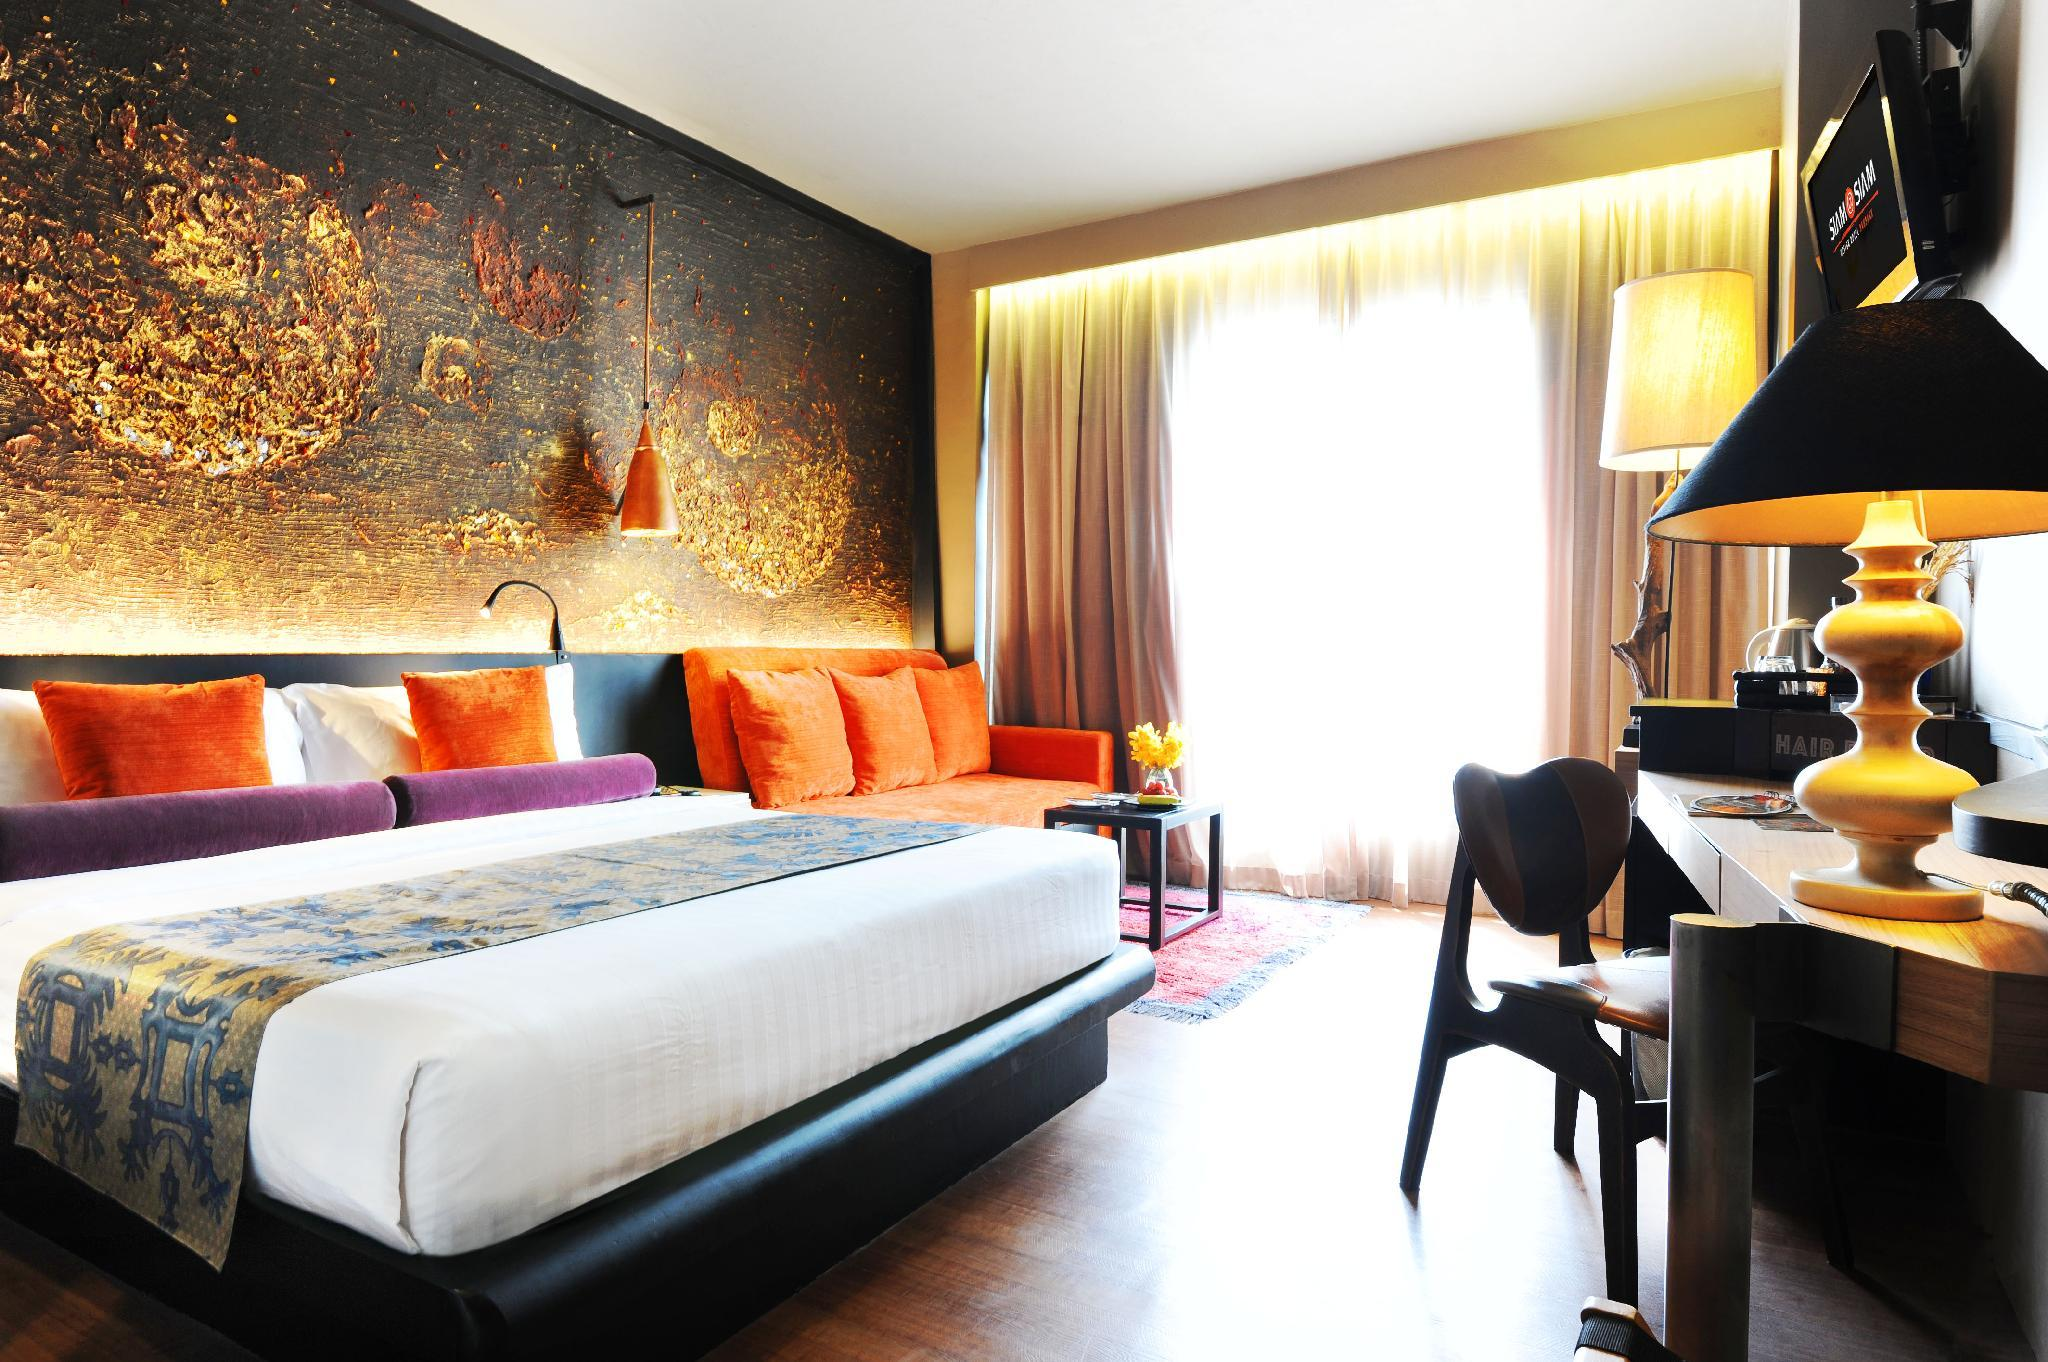 Room Design Website Siam Siam Design Hotel Bangkok Hotel Bangkok Rooms